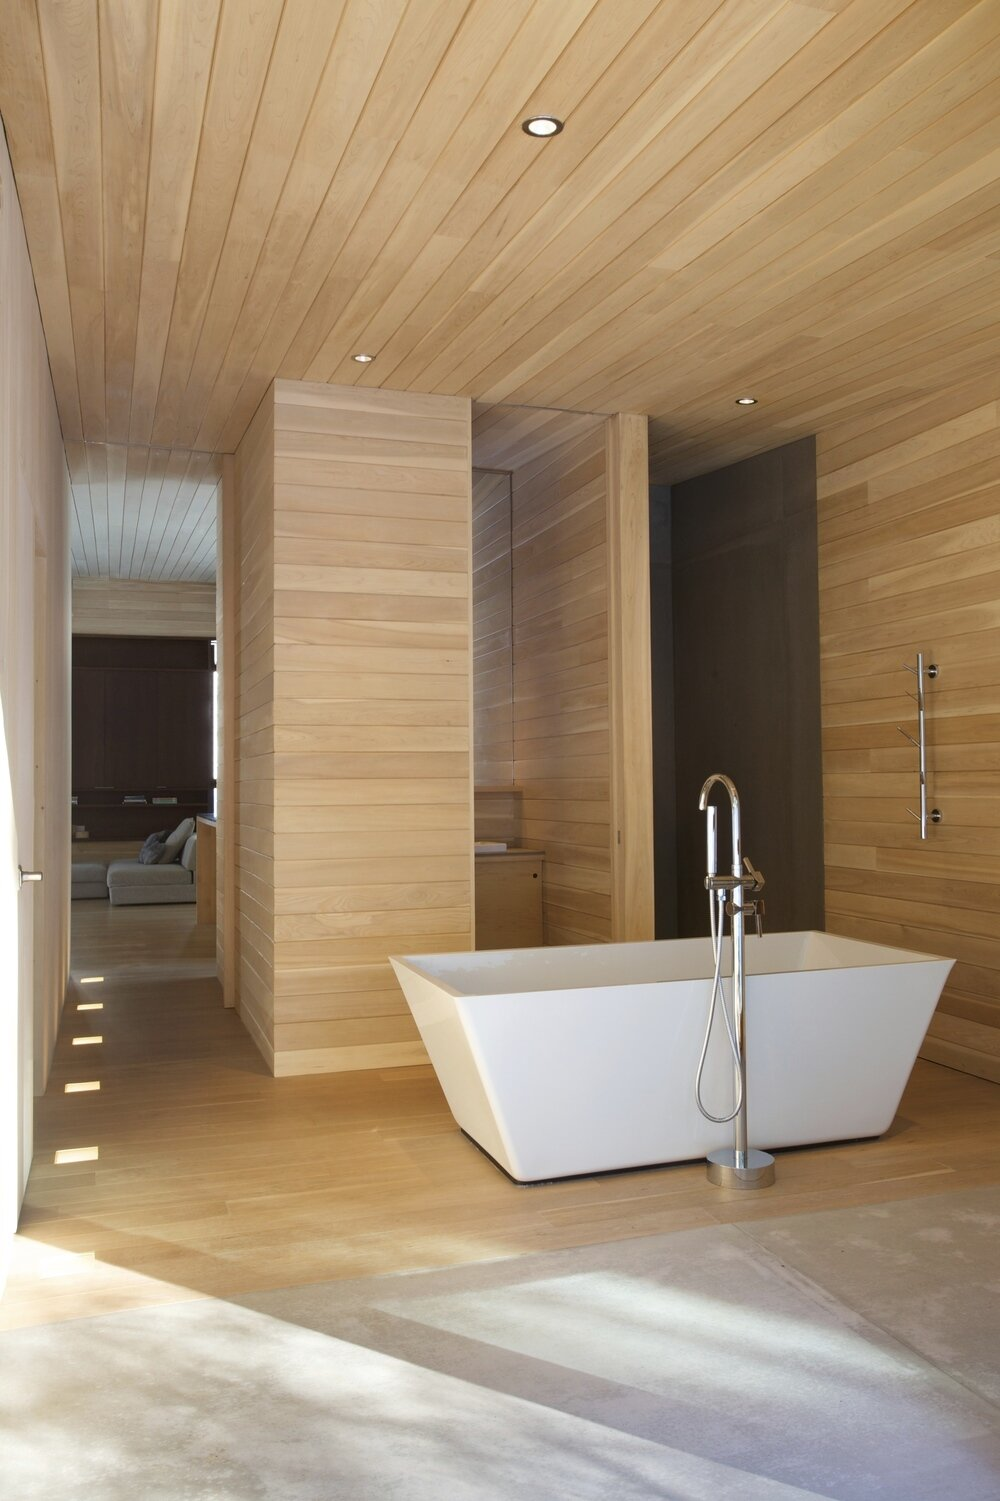 La Luge House by YH2 Architects - Quebec Canada - Bathroom - Humble Homes